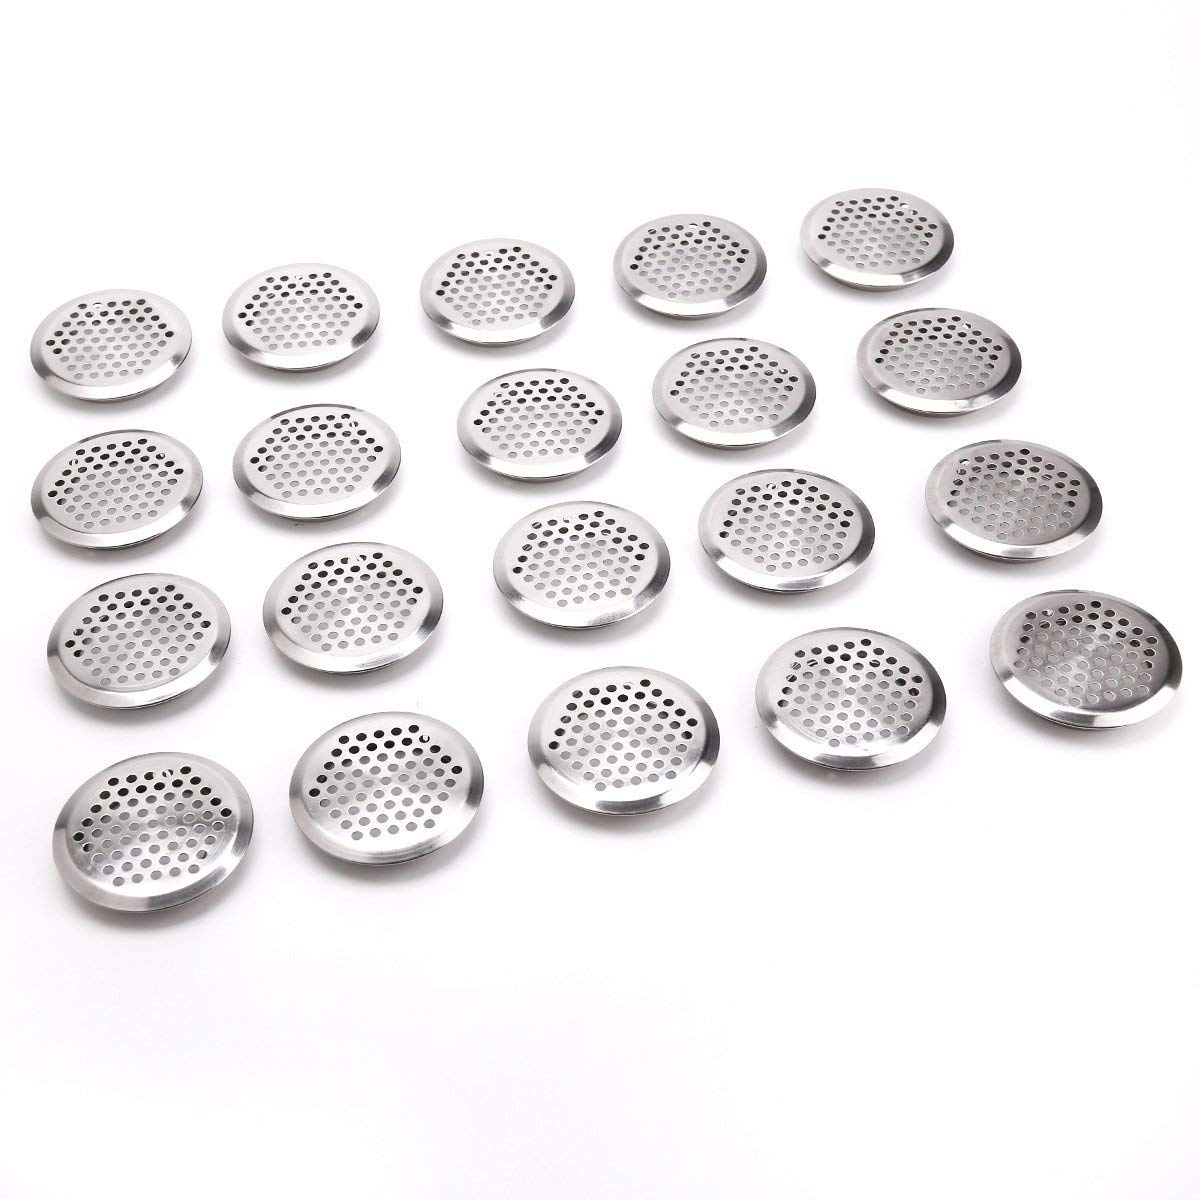 20 Pieces Aeration Grid Ventilation Circle Lid For Cabinet/shoe Cabinet/wardrobe Vent Ventilation Cap 65mm Stainless Steel Silve